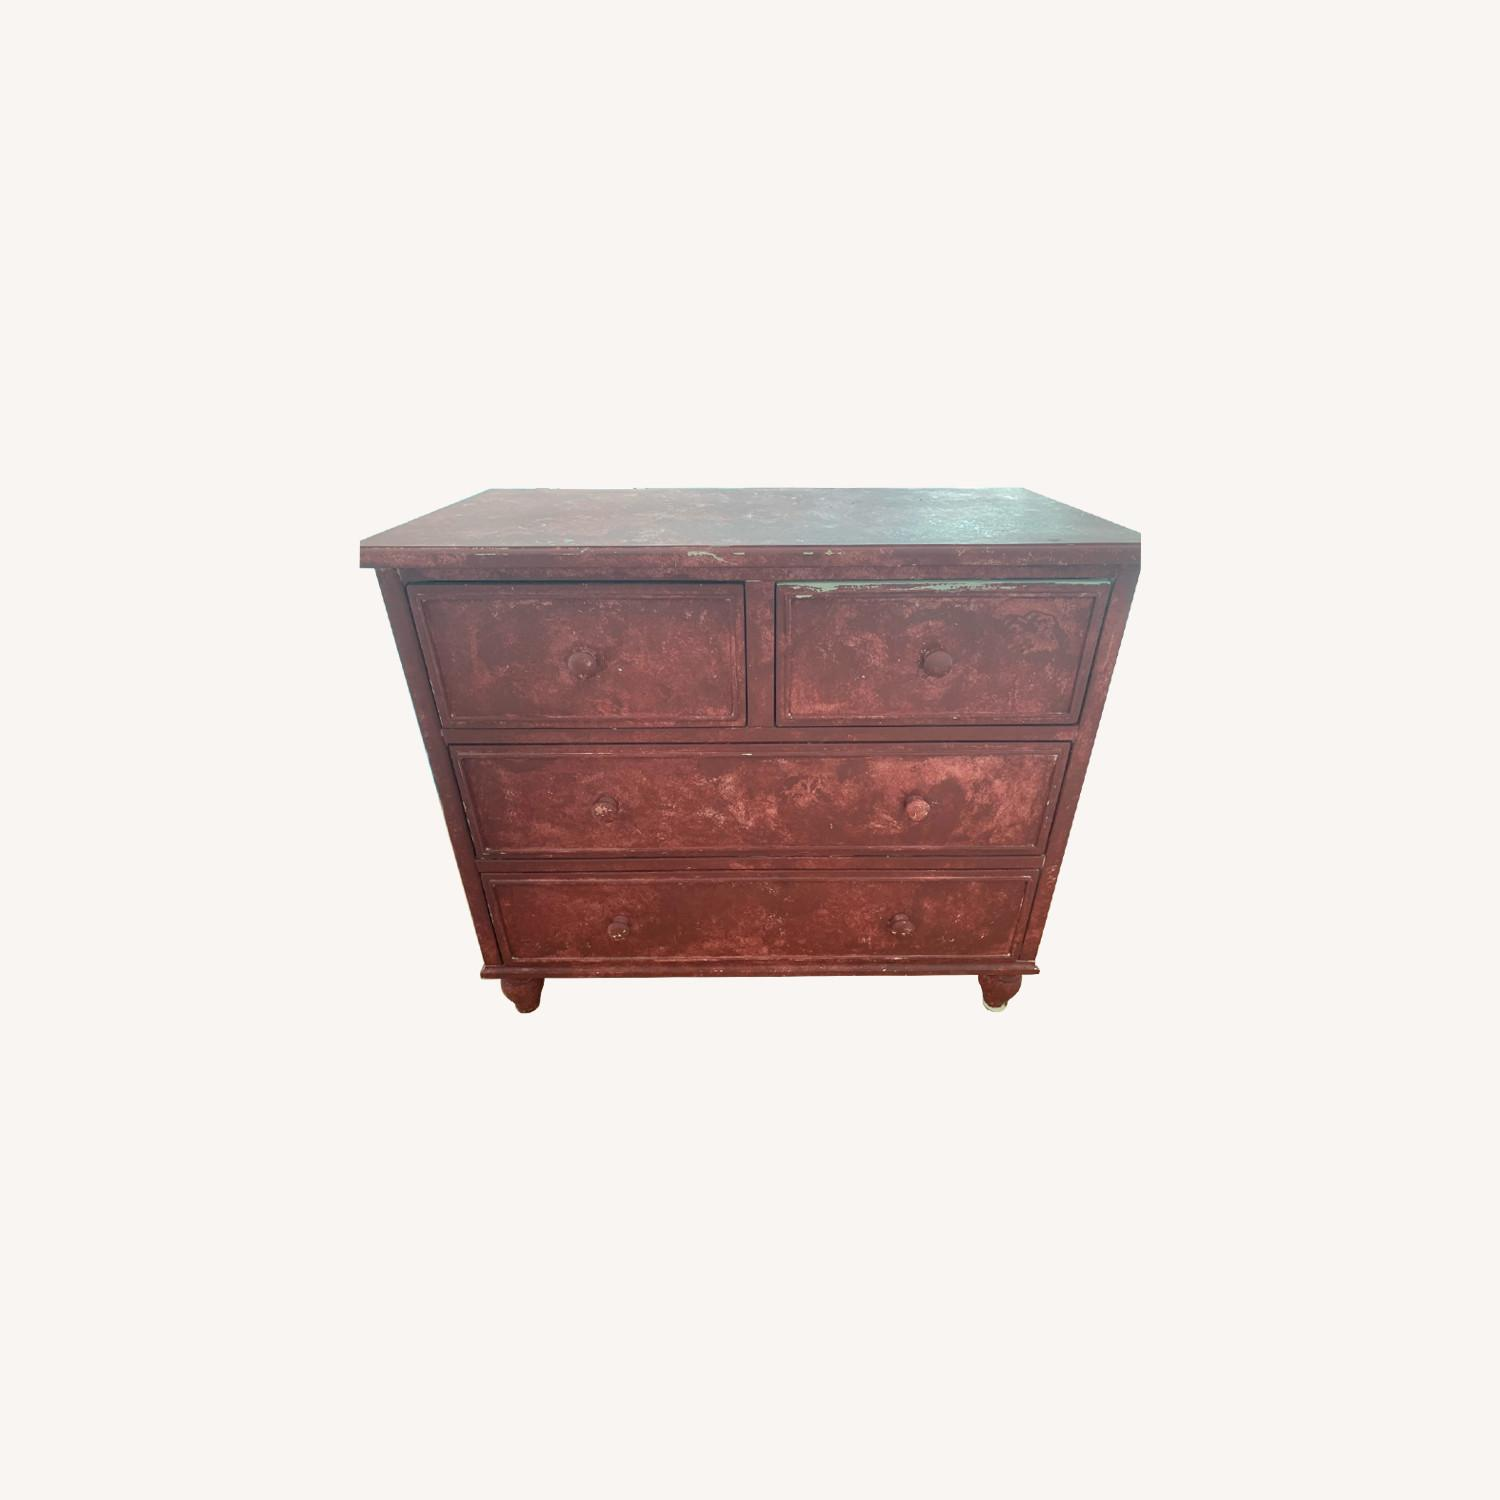 Pottery Barn Dresser (Painted) - image-0